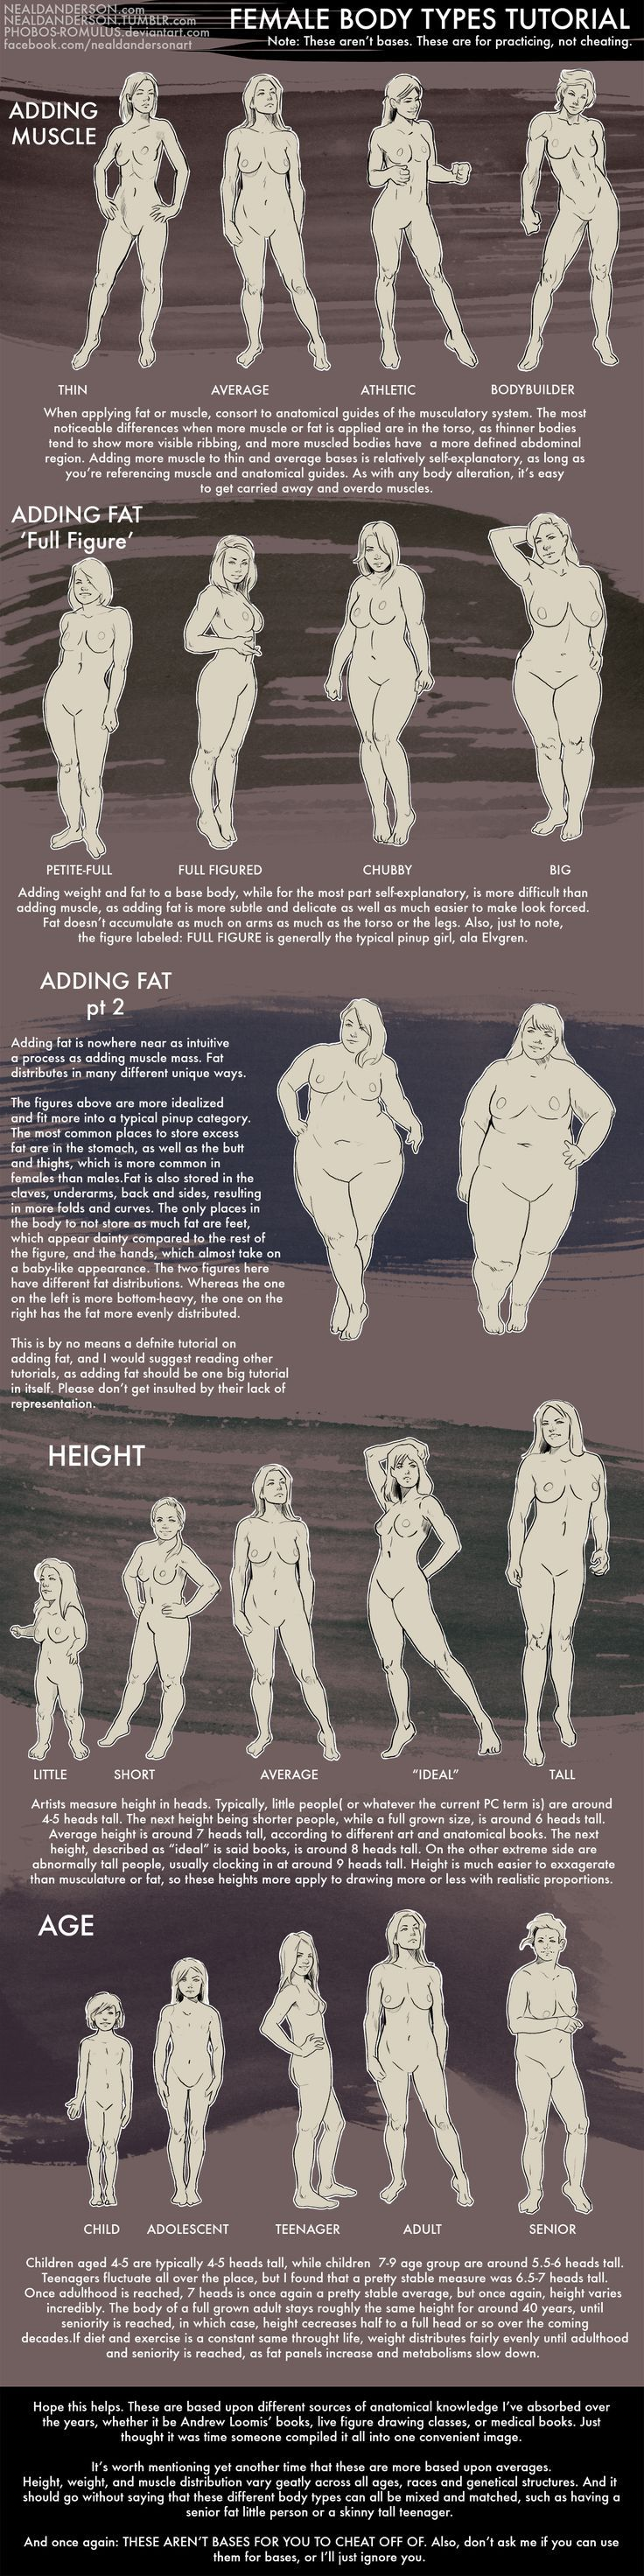 Female Body Types Drawing Tutorial by Phobos-Romulus on deviantART: